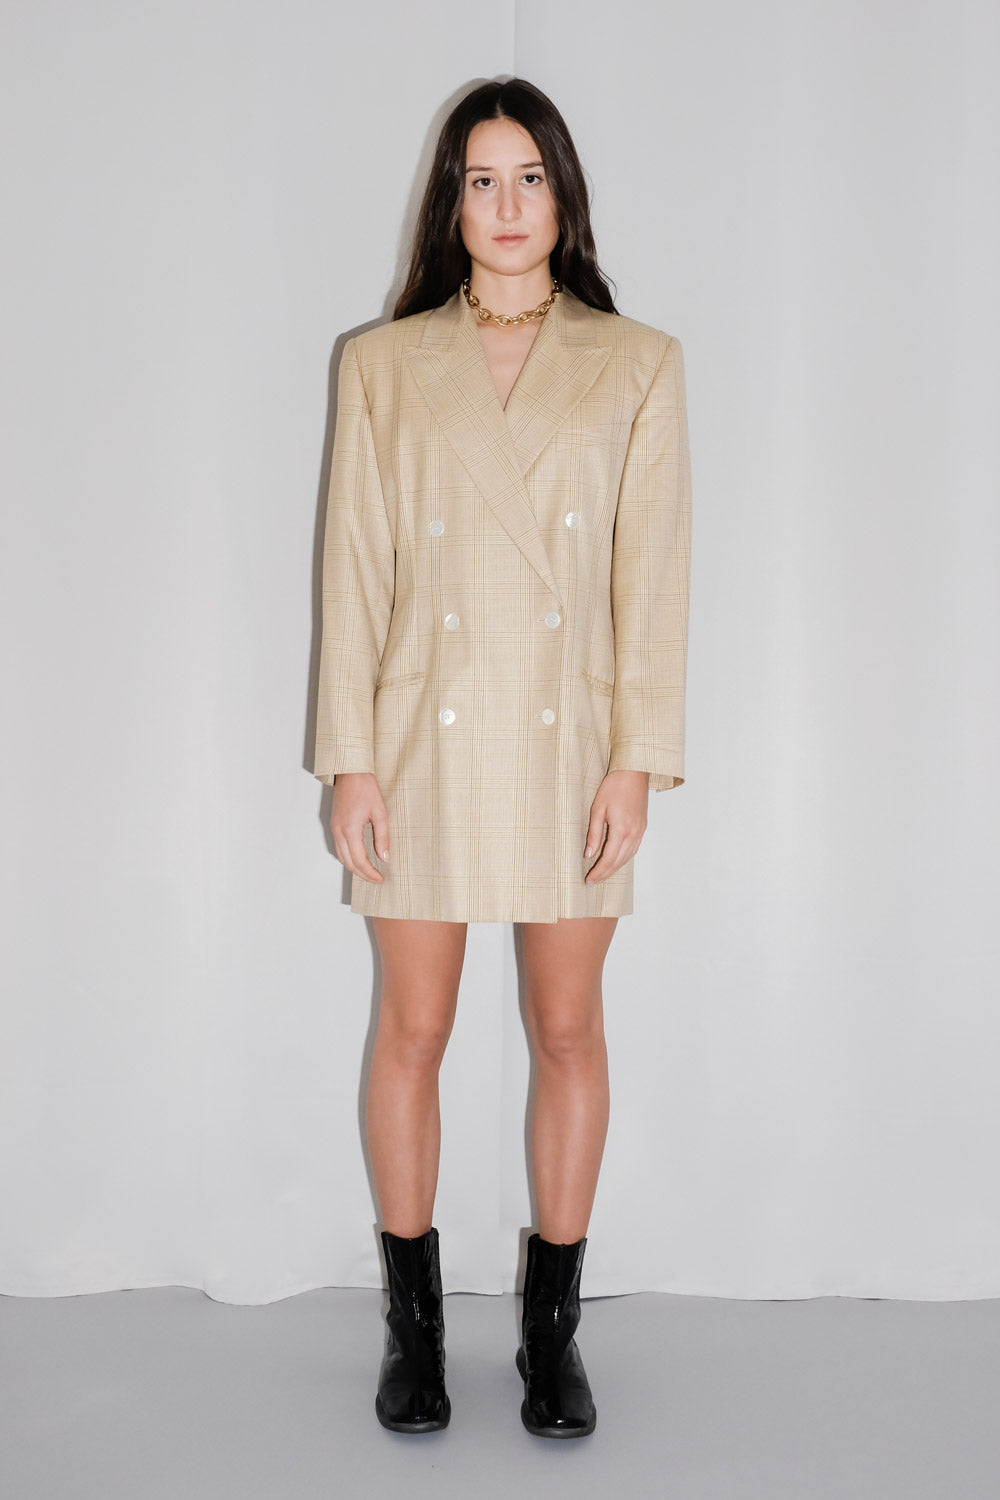 0017_CREAM SILK WOOL TARTAN OVERSIZED BLAZER